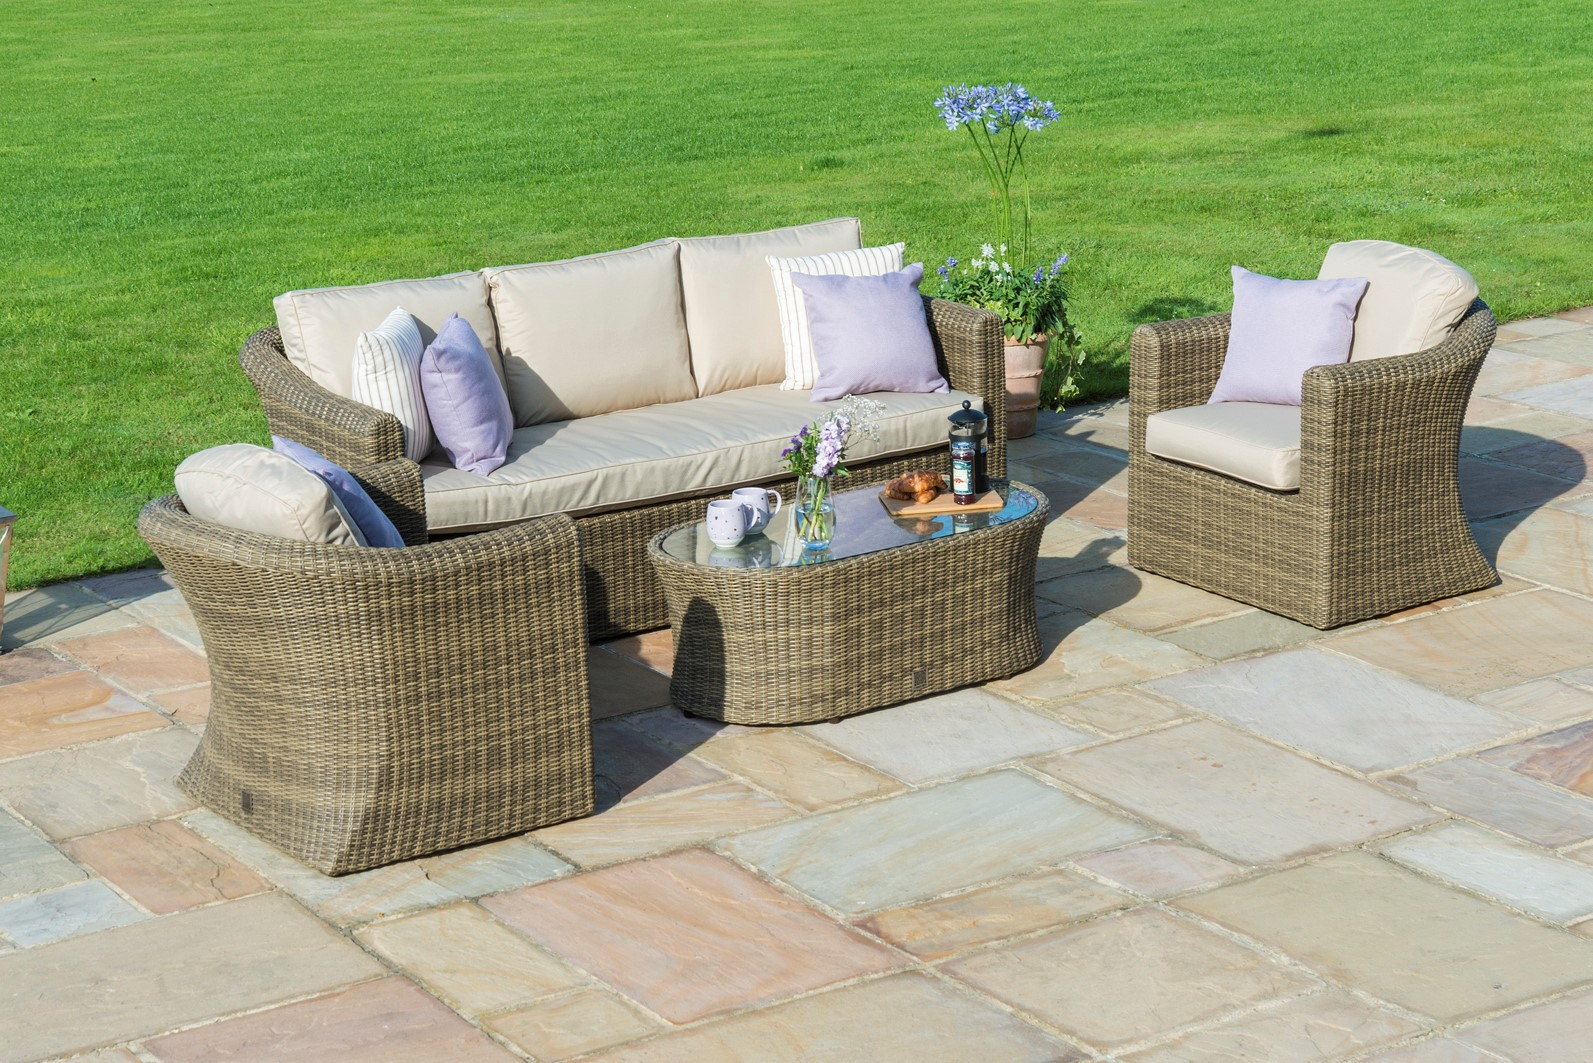 The Good moments in the Garden — Relax on a Garden sofa Set this